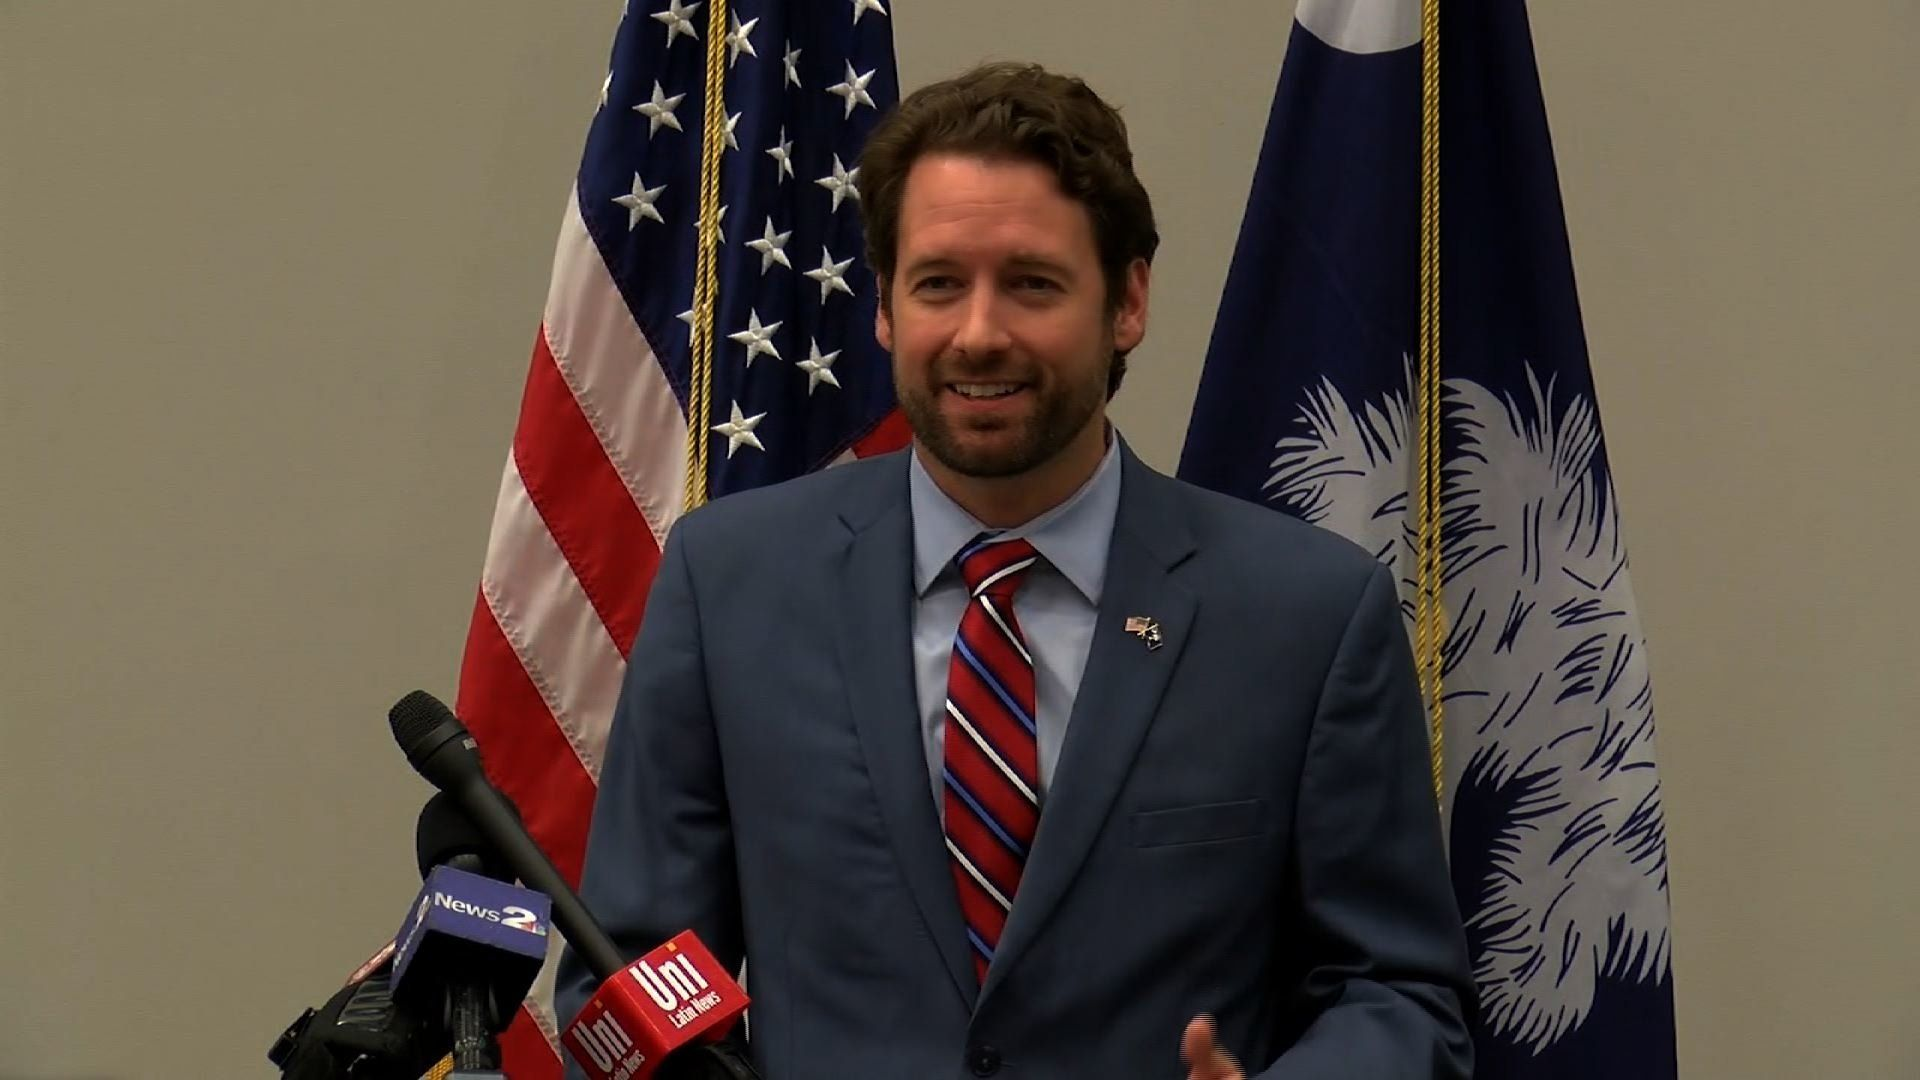 Democrat Joe Cunningham, a moderate ocean engineer, won in South Carolina's Republican-held 1st Congressional District thanks